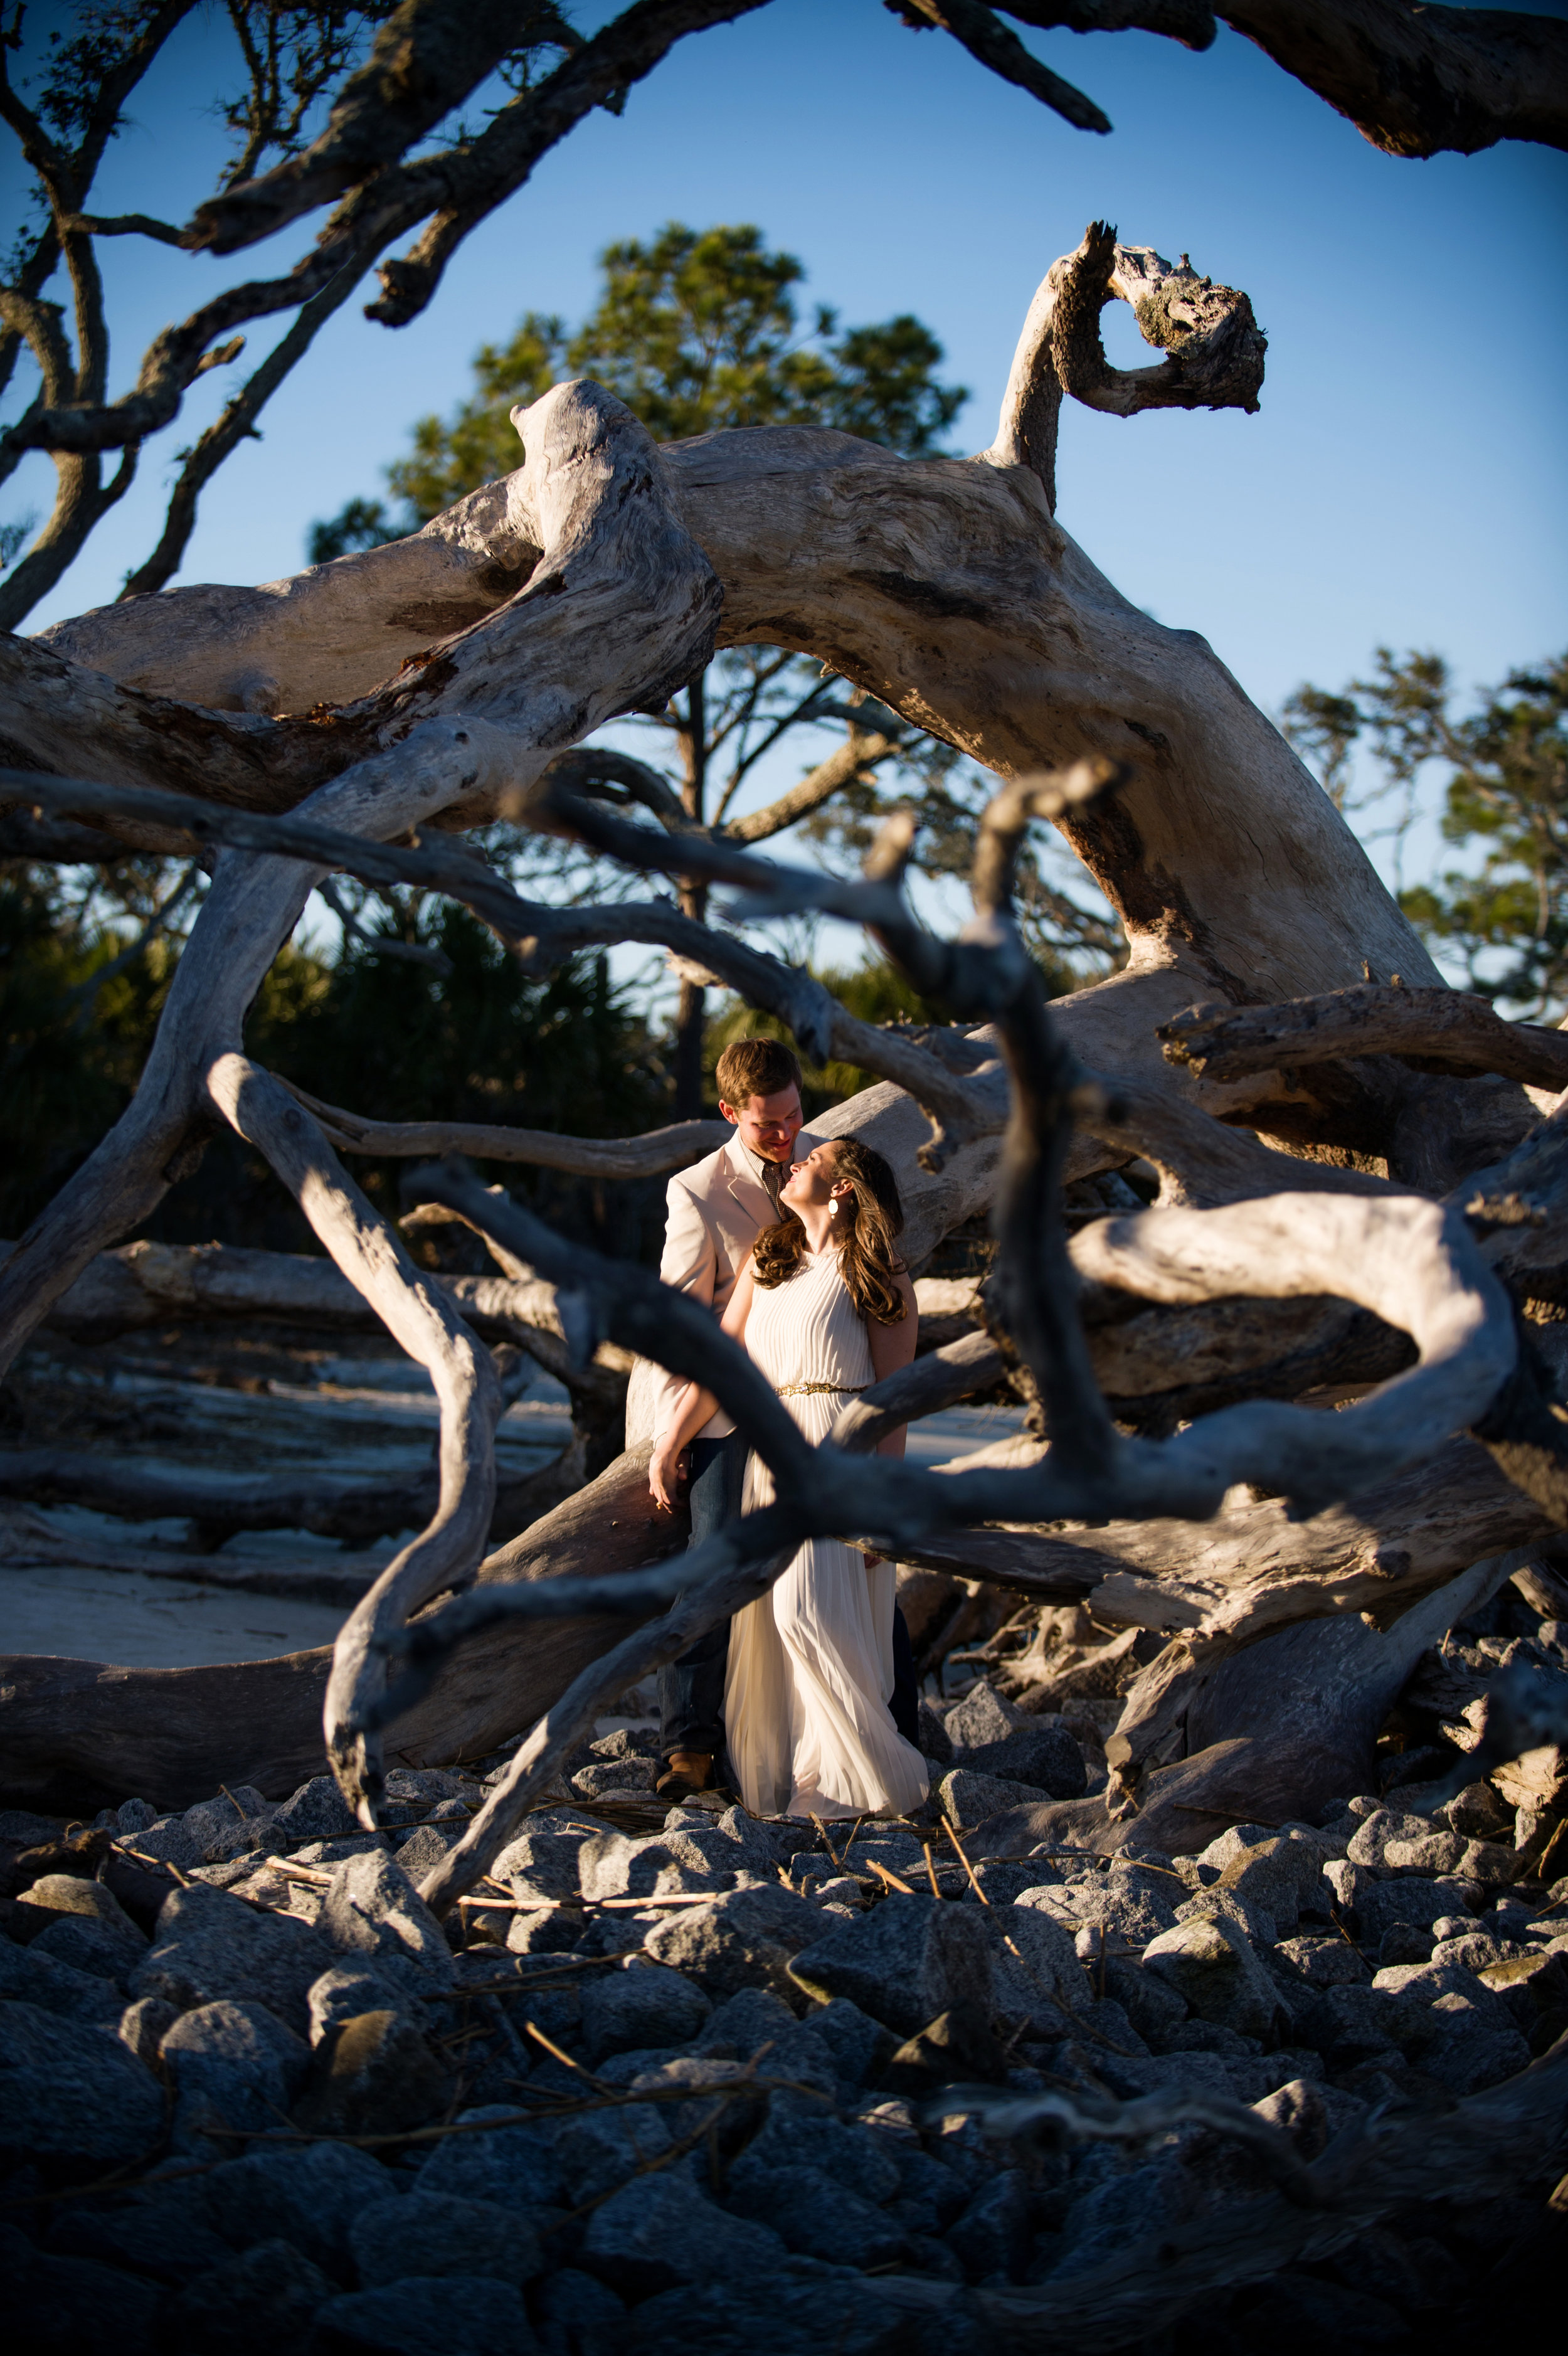 Outdoor St. Augustine beach engagement photography by the sea